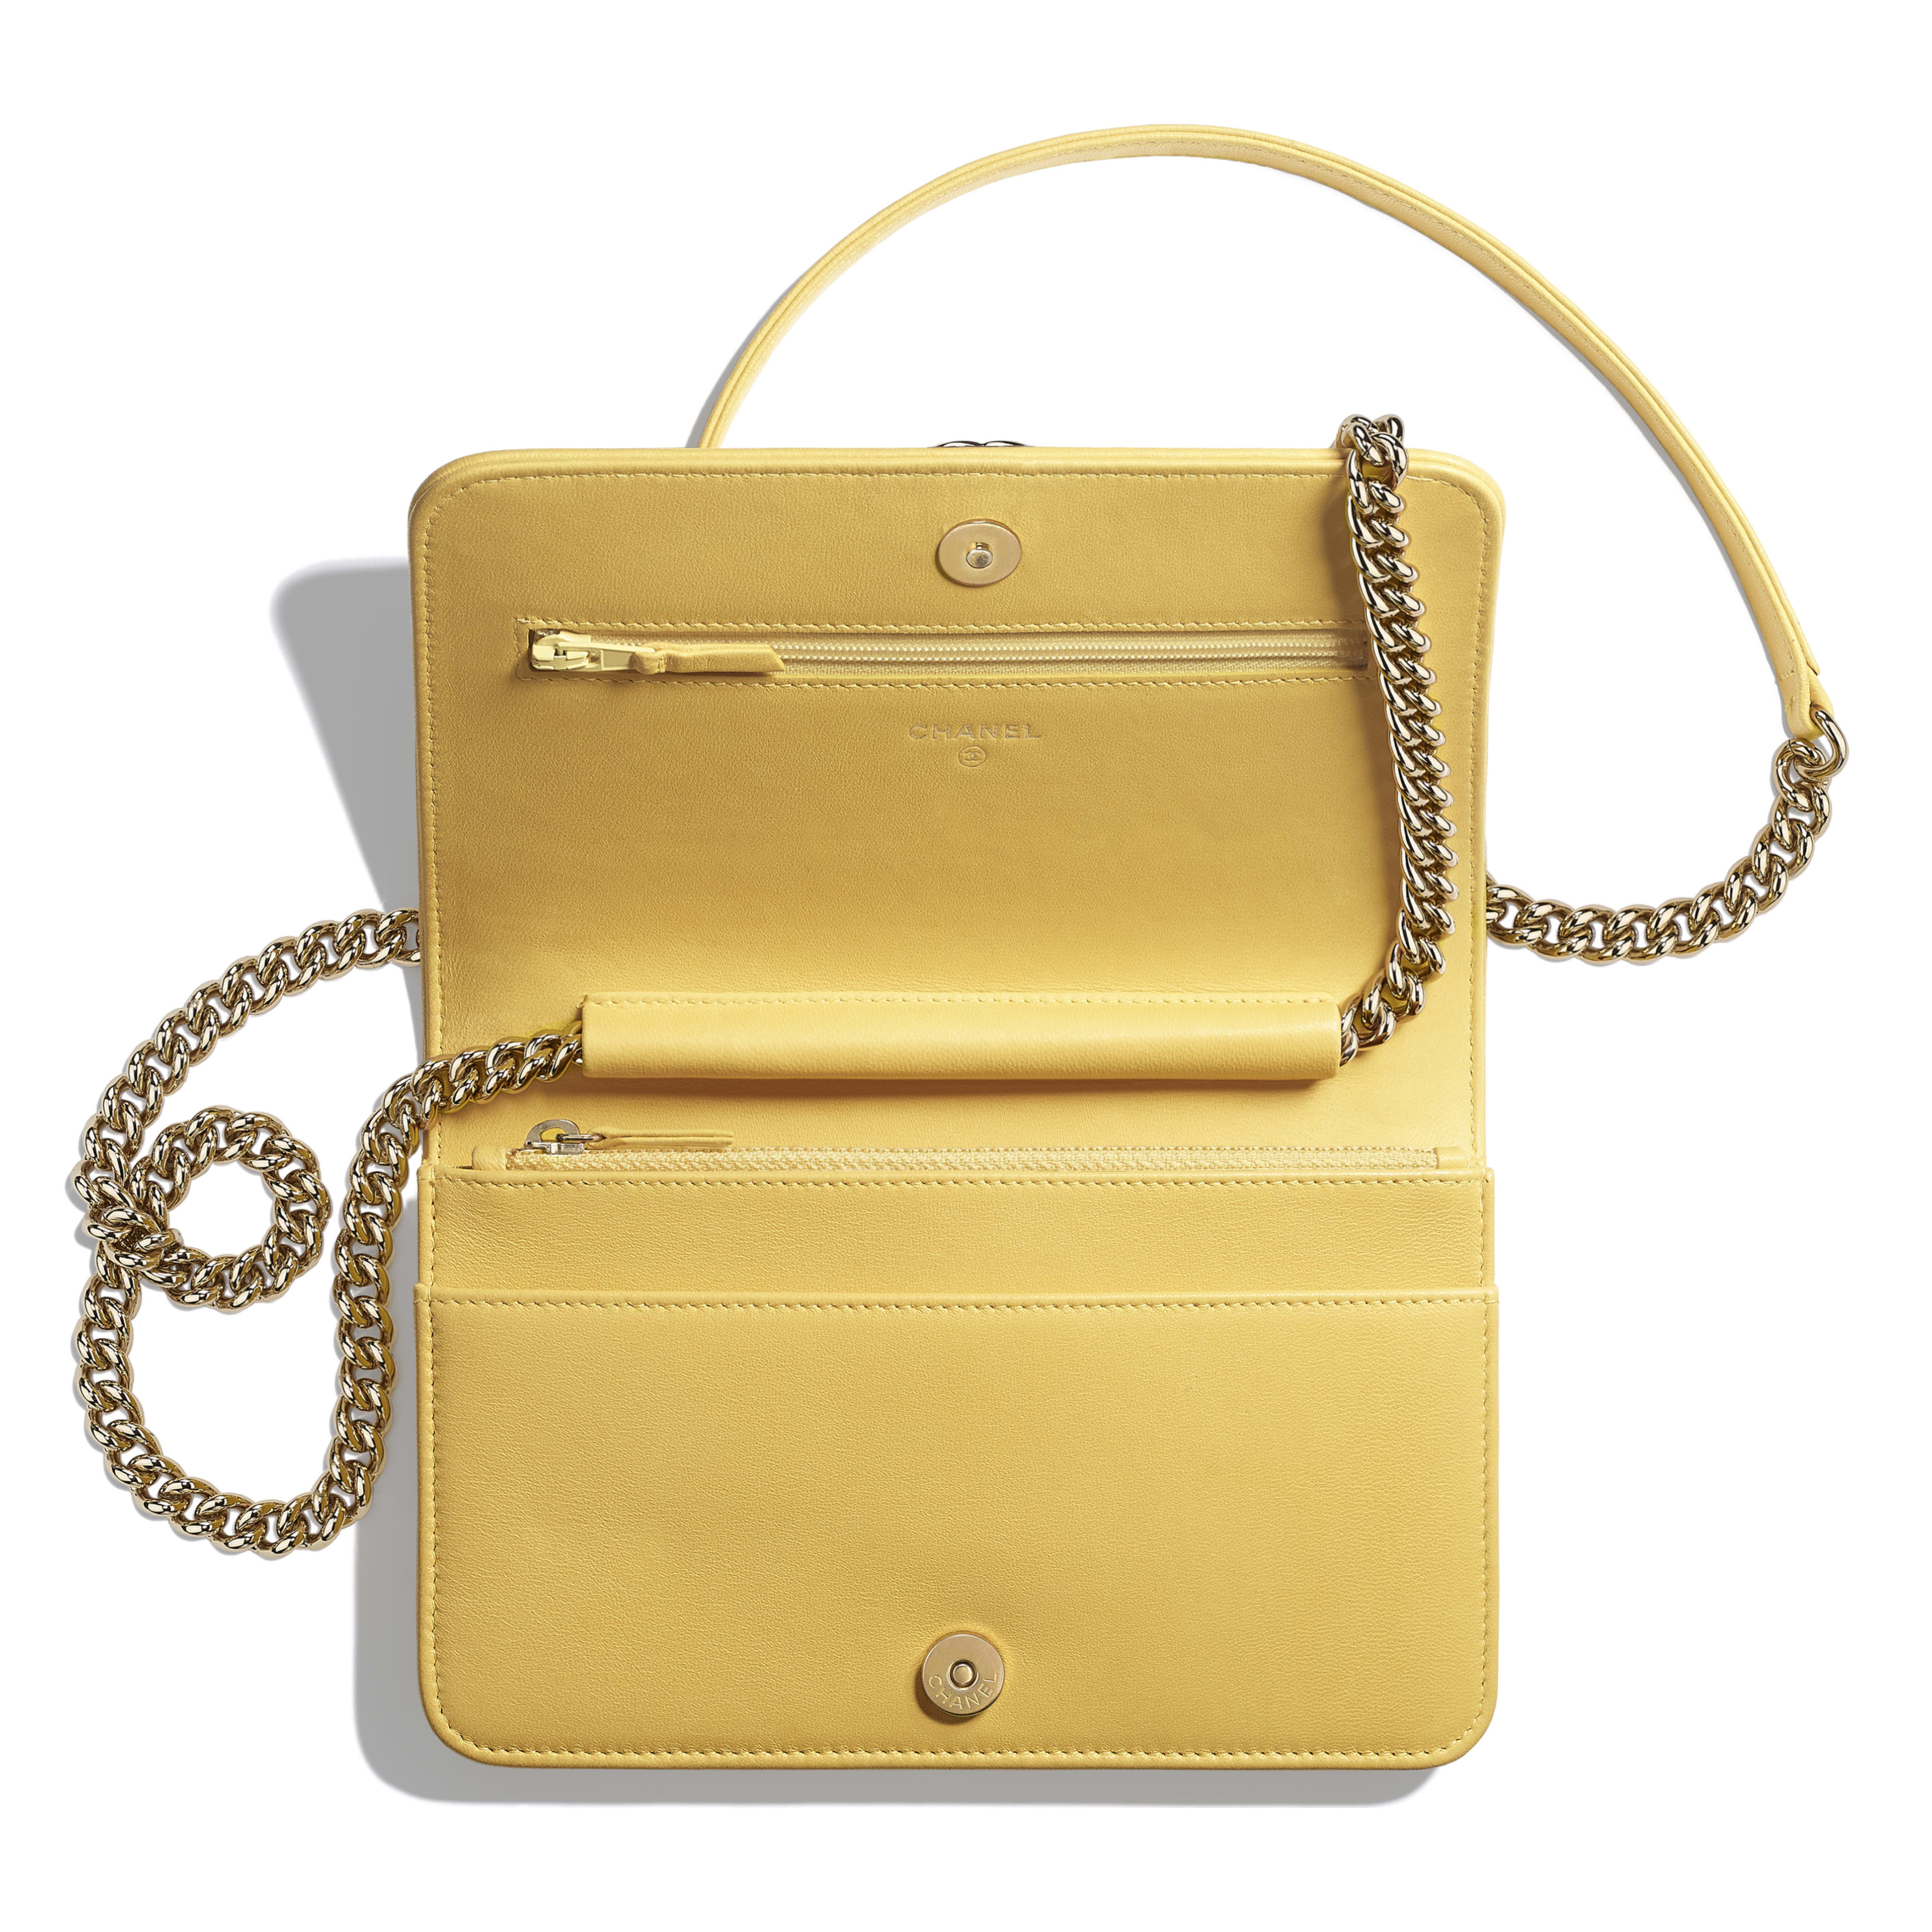 BOY CHANEL Wallet on Chain - Yellow & Beige - Cotton, Lambskin & Gold-Tone Metal - Other view - see full sized version